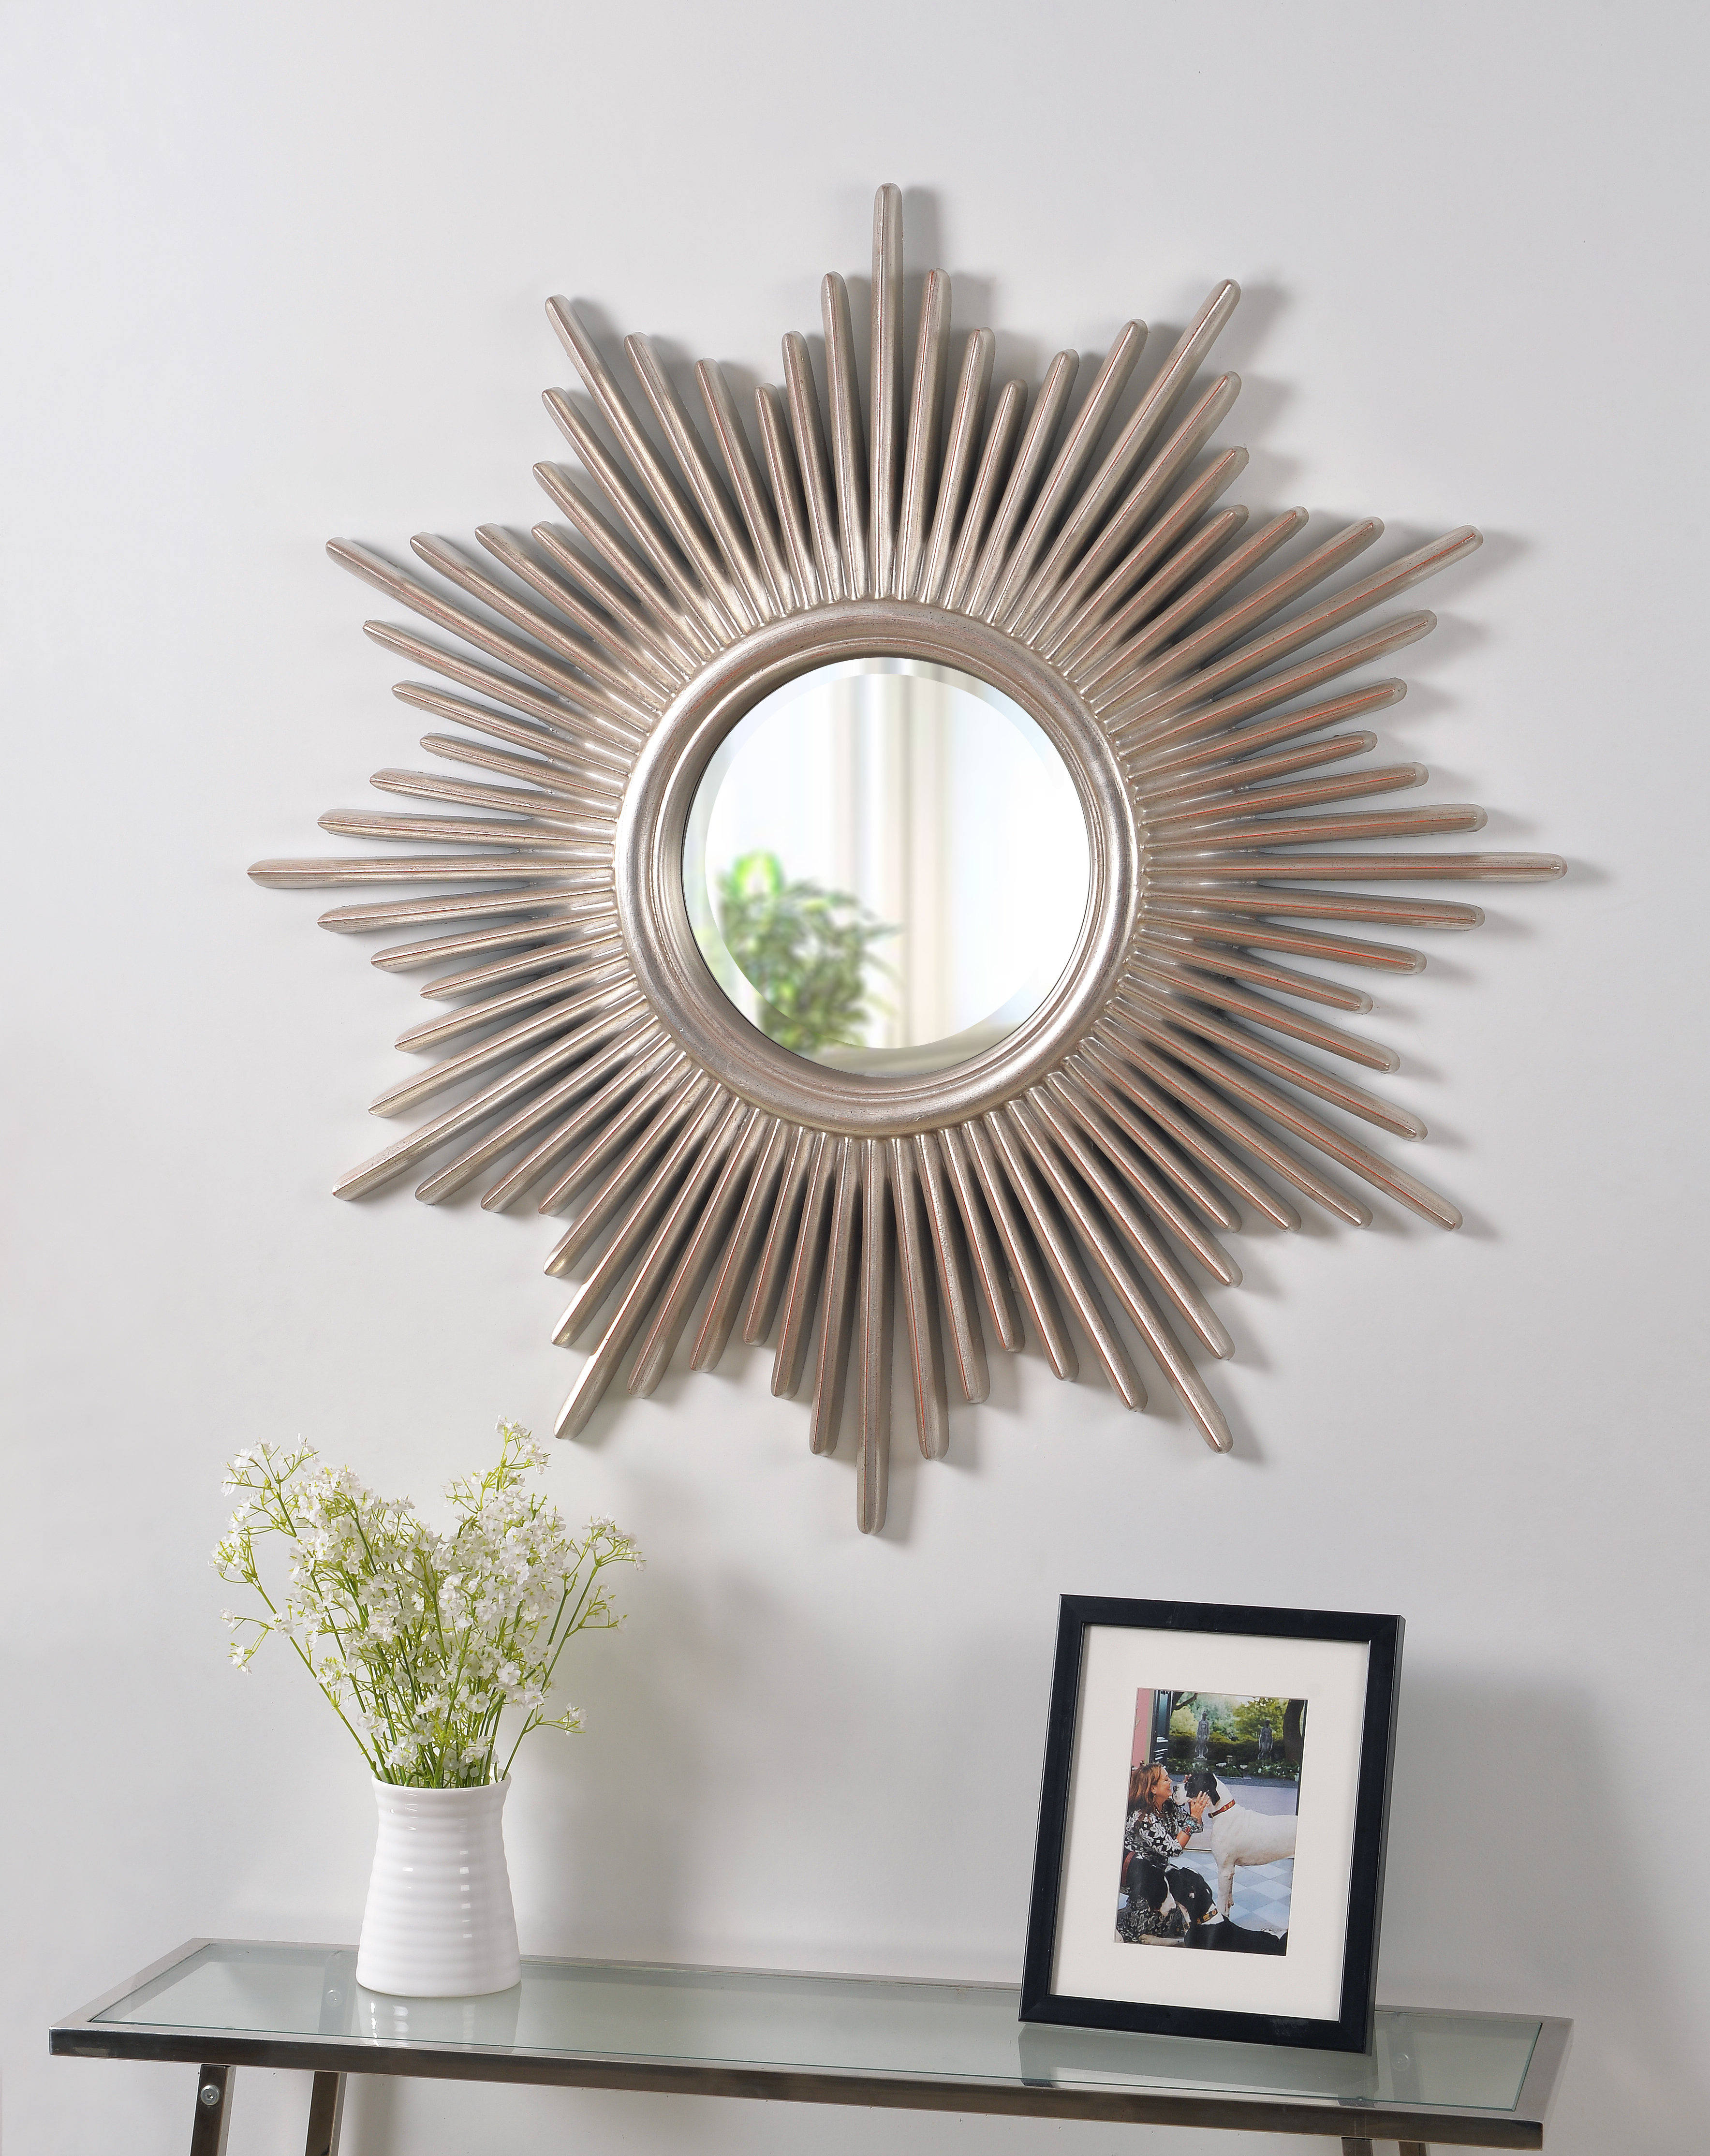 Josephson Starburst Glam Beveled Accent Wall Mirror Within Fashionable Glam Beveled Accent Mirrors (Gallery 3 of 20)